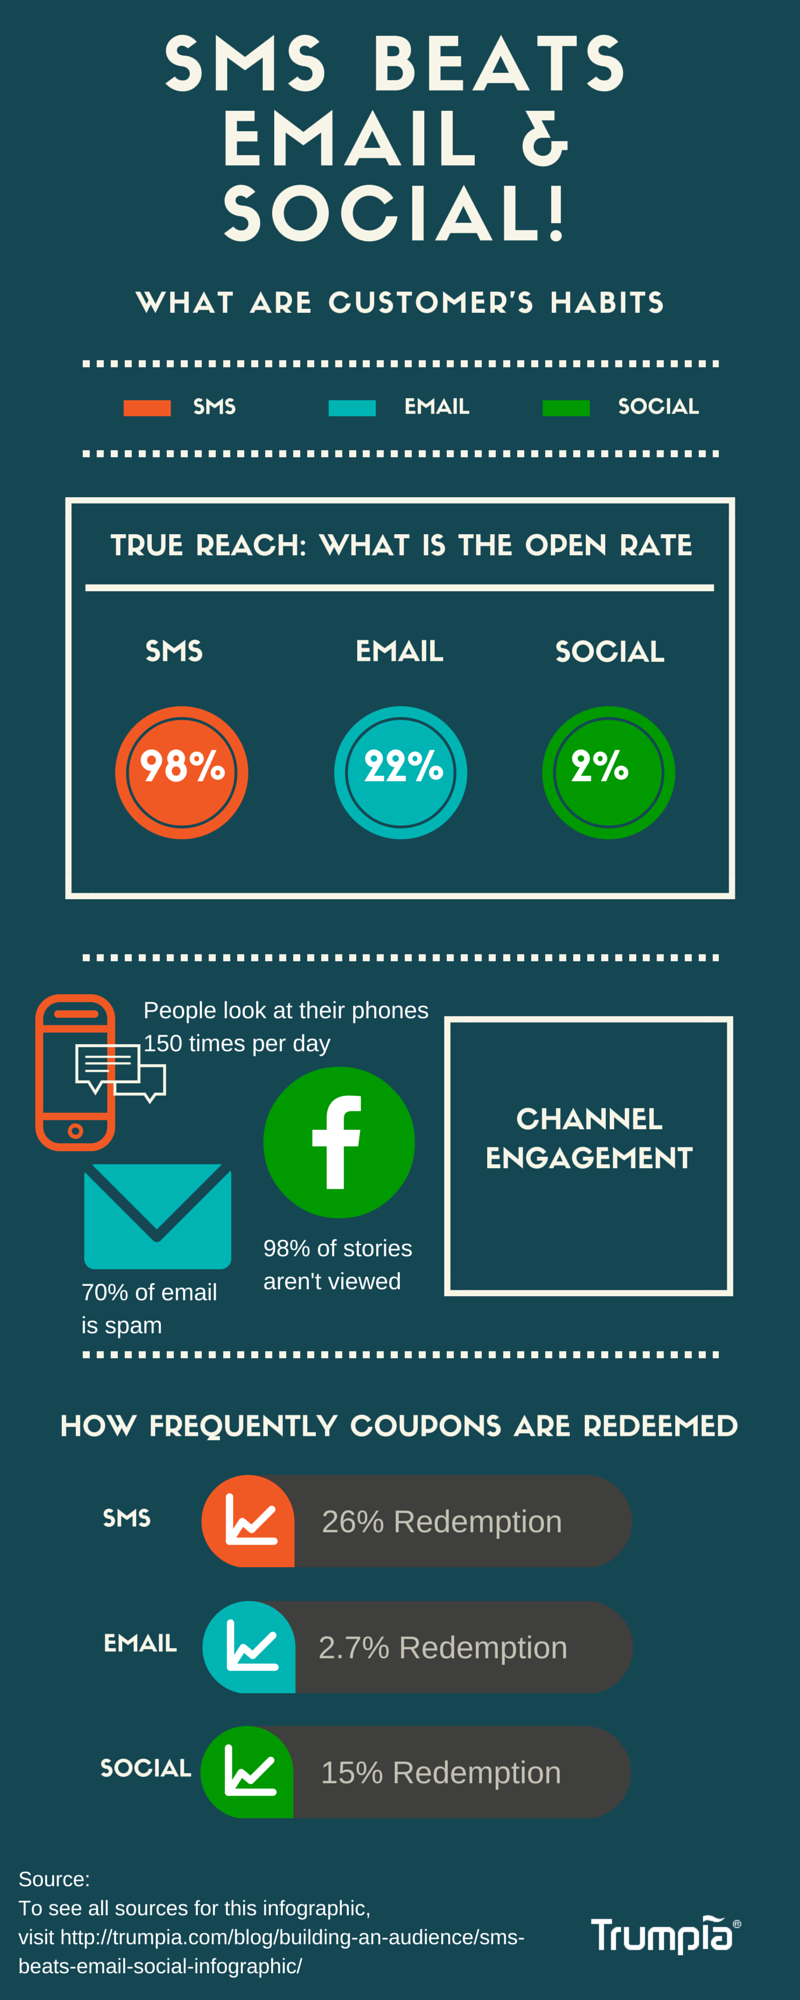 SMS BEATS EMAIL & SOCIAL!